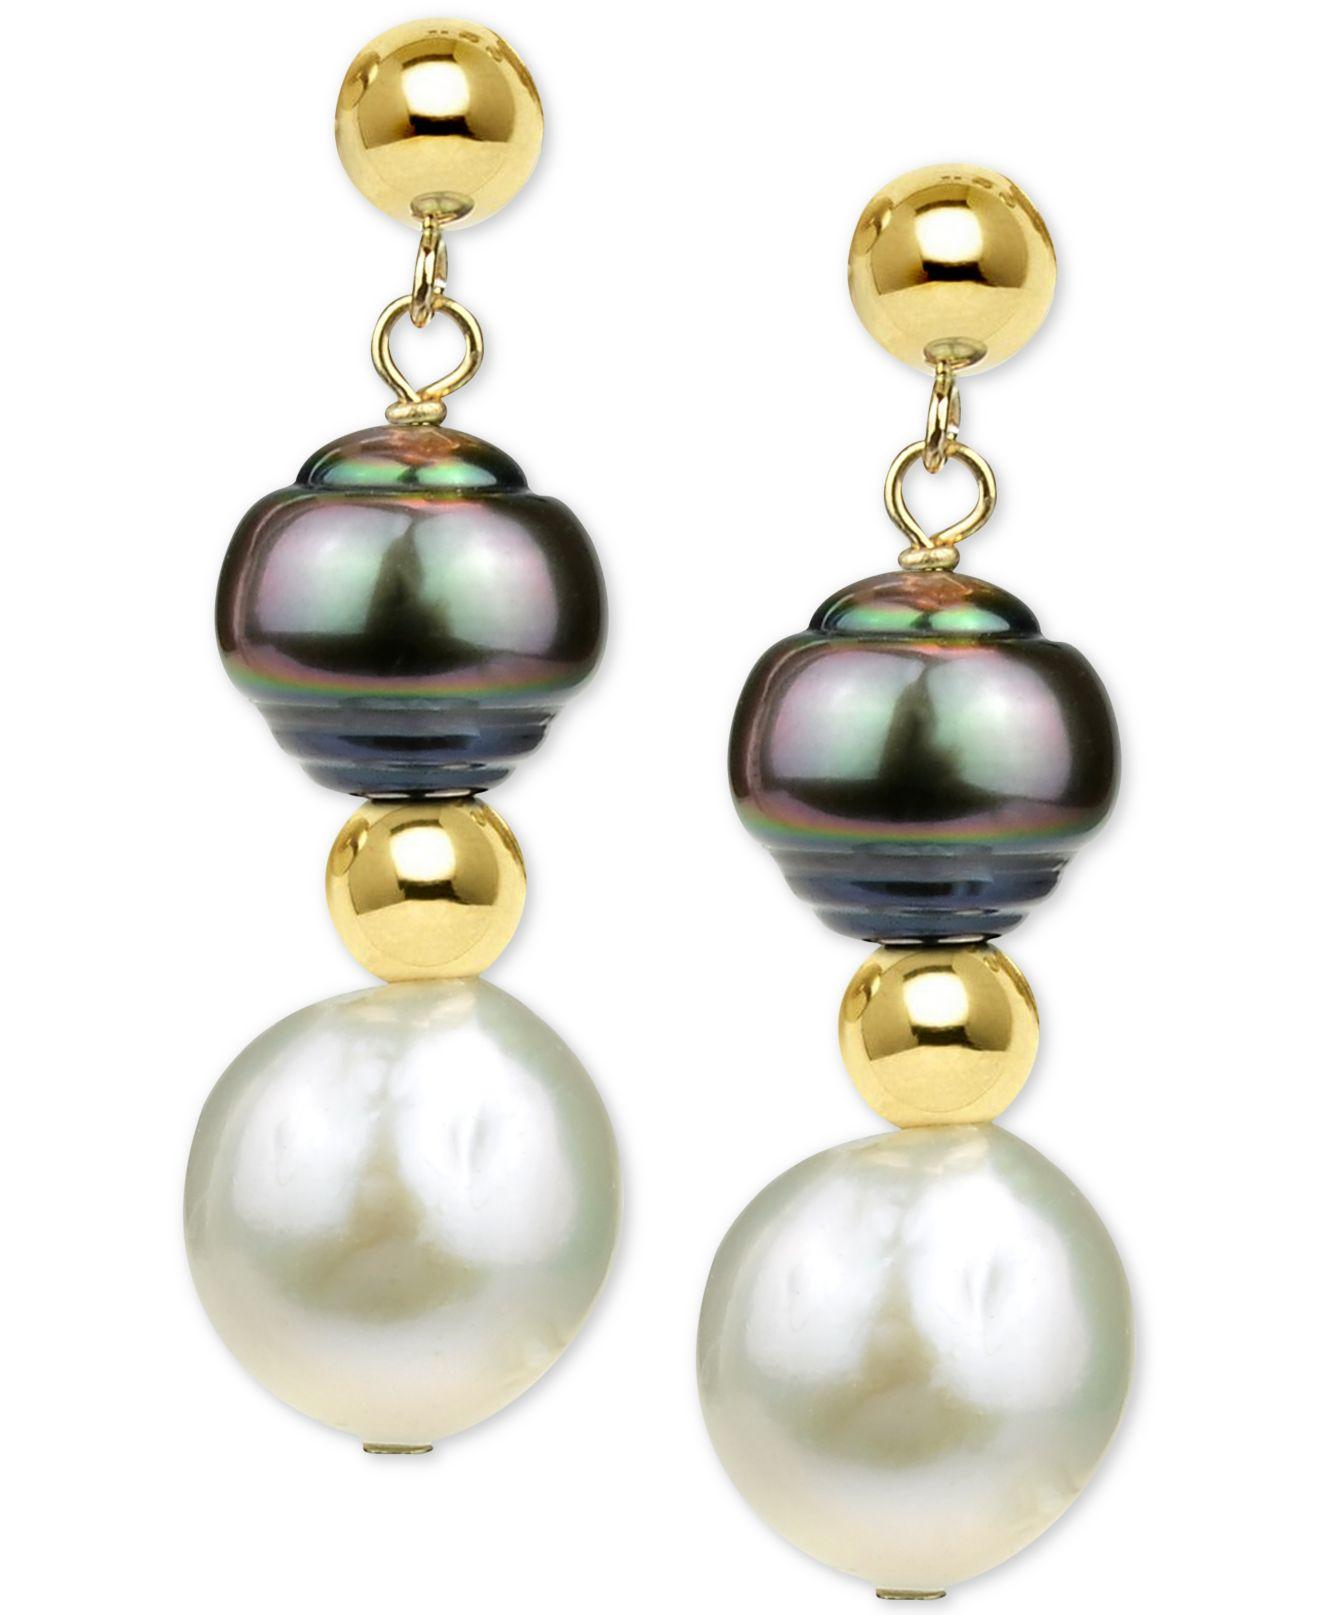 ee0b8e4cb Lyst - Macy's Cultured Baroque Freshwater Pearl (11-12mm) And ...